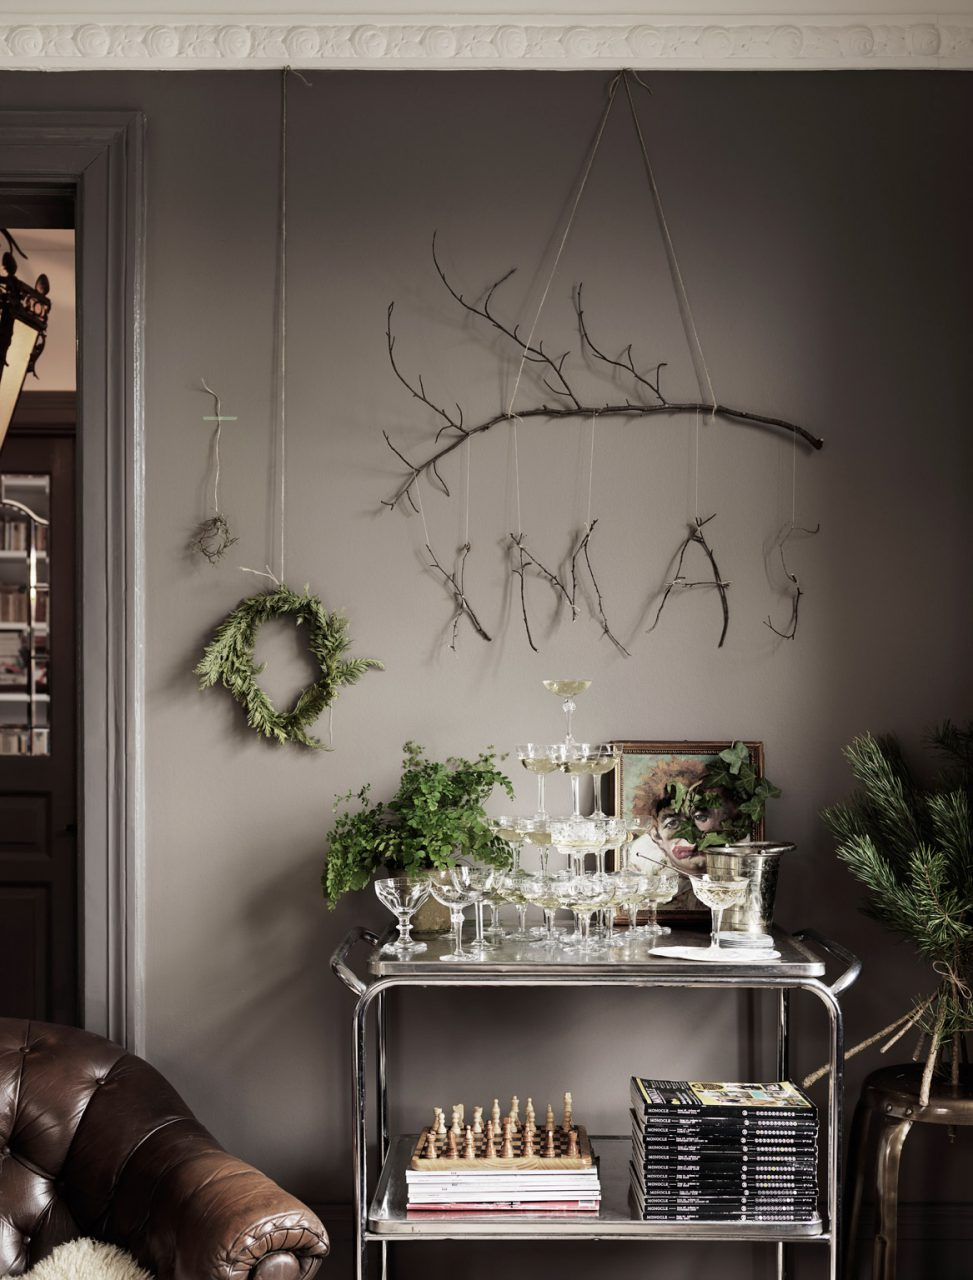 Elle Decoration, Jul hos Malin